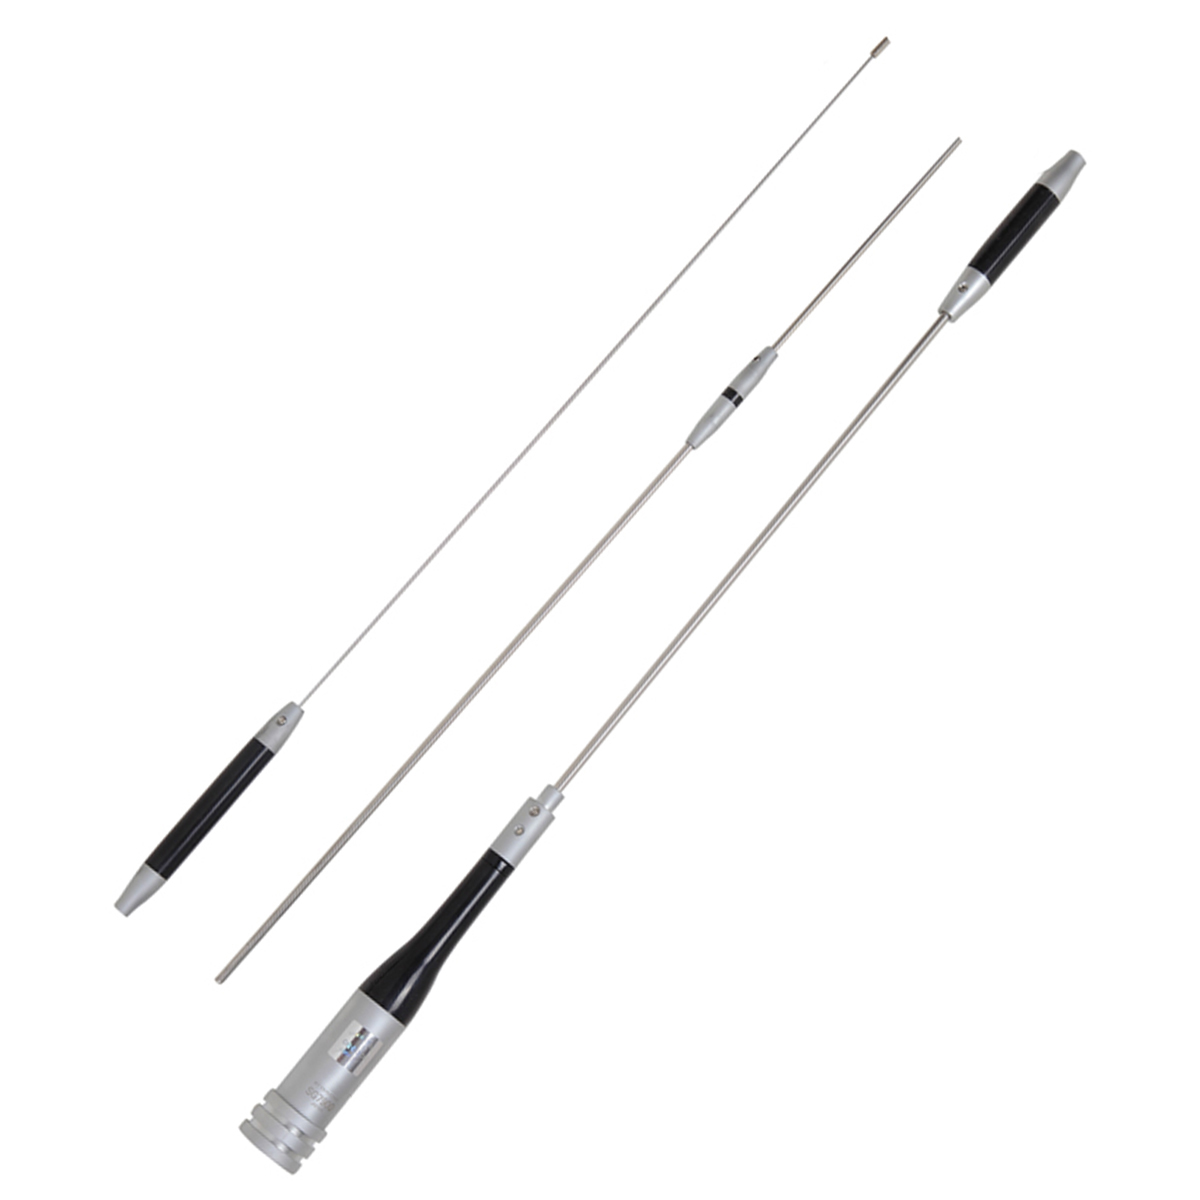 SOONUHA SG 7900 VHF UHF Dual Band Antenna 144MHz 430MHz Durable Stainless Steel 5.0dB 7.6dB High Gain Antenna For Mobile Radio